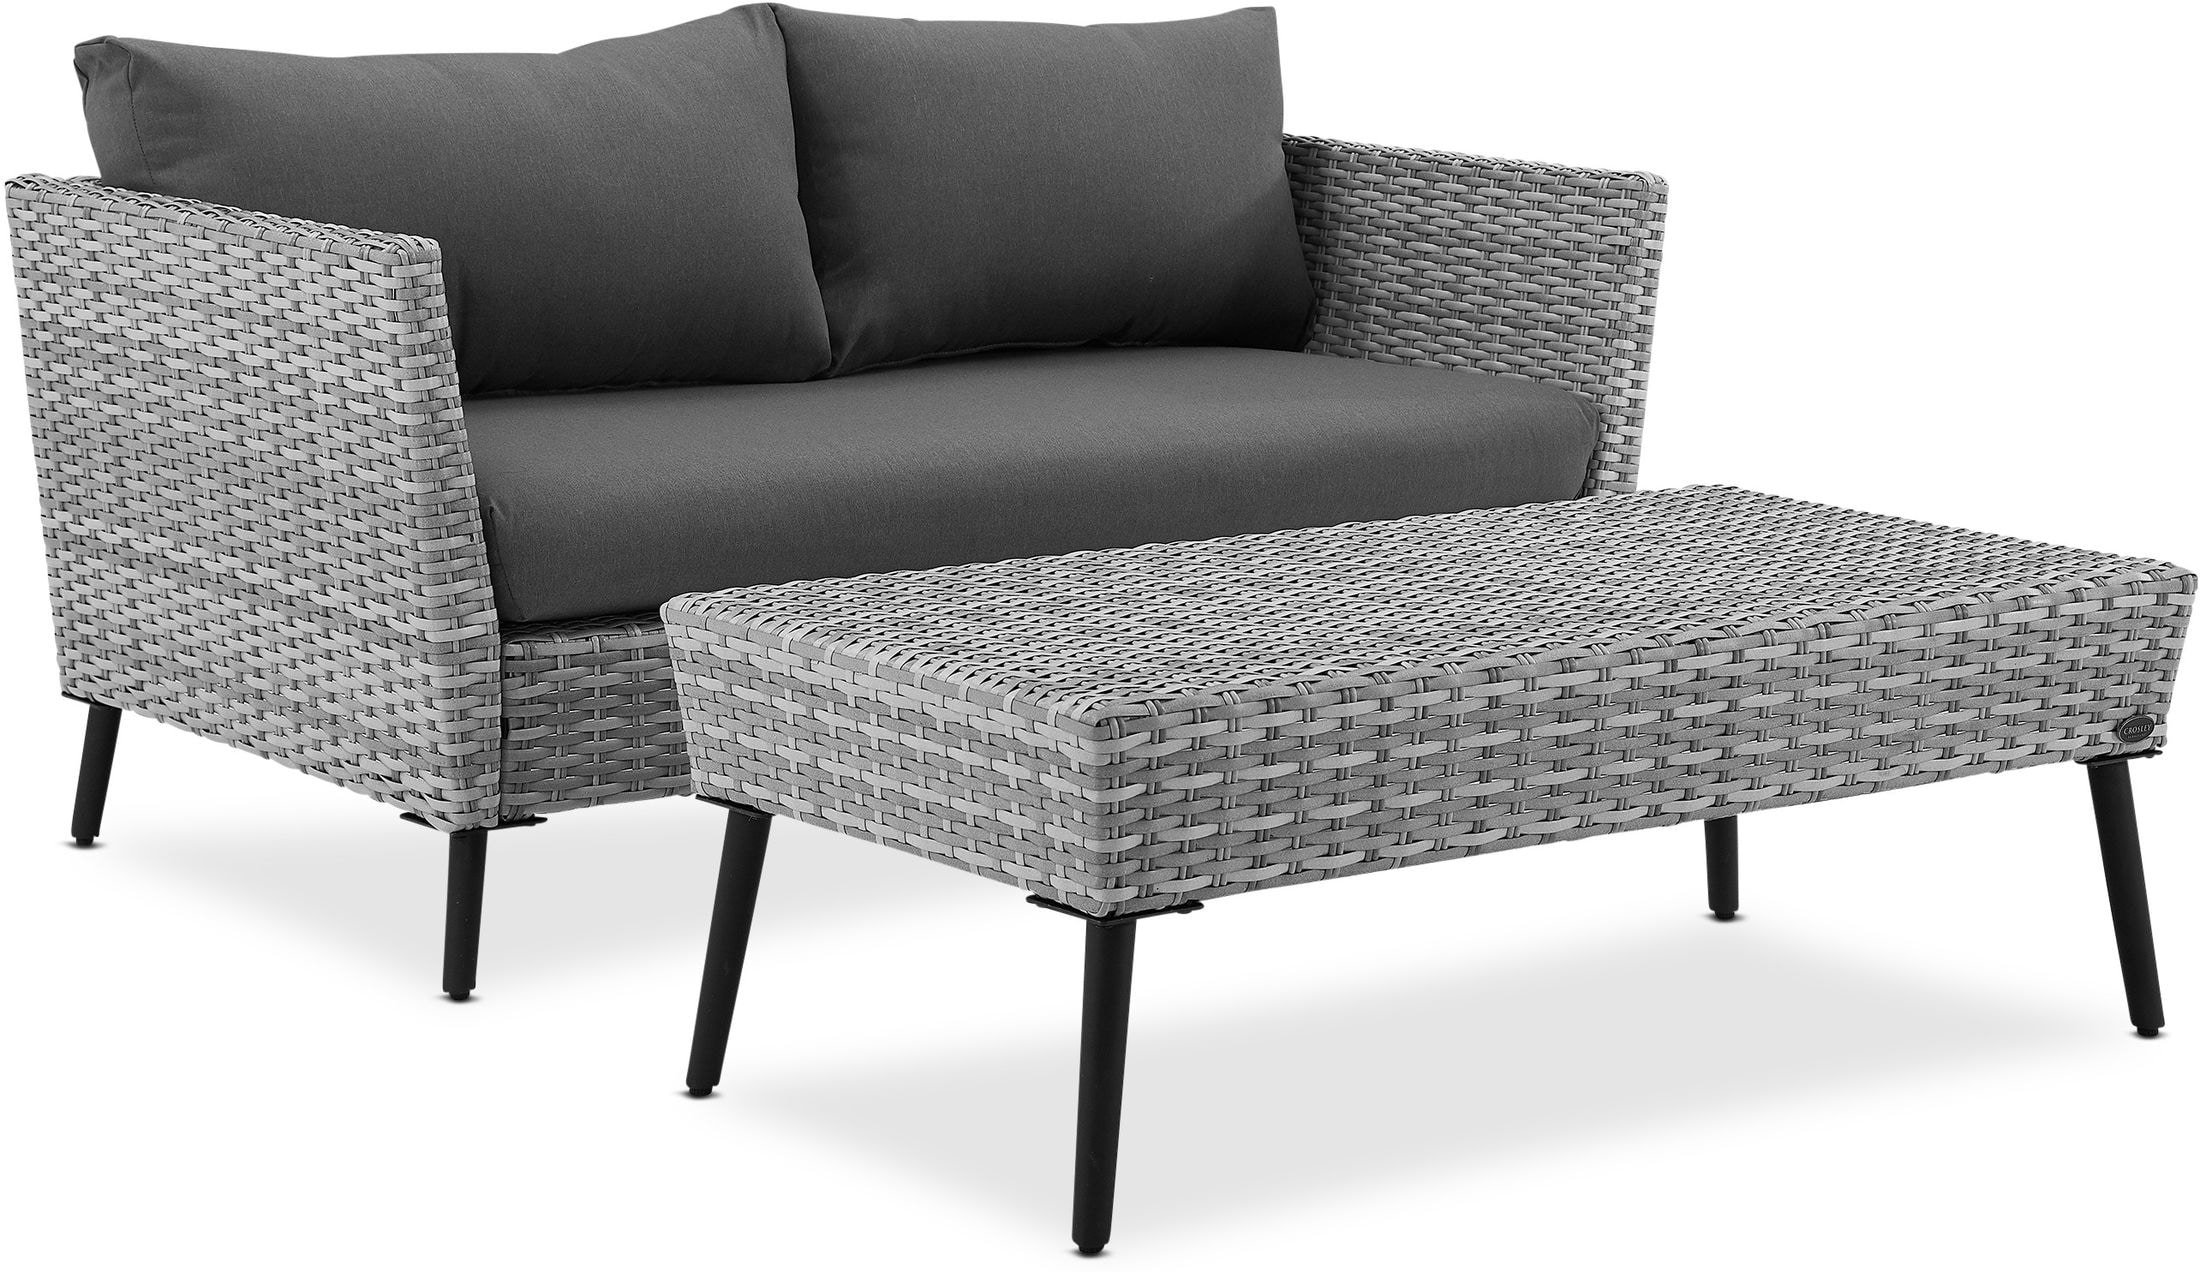 Outdoor Furniture - Ventura Outdoor Loveseat and Coffee Table Set